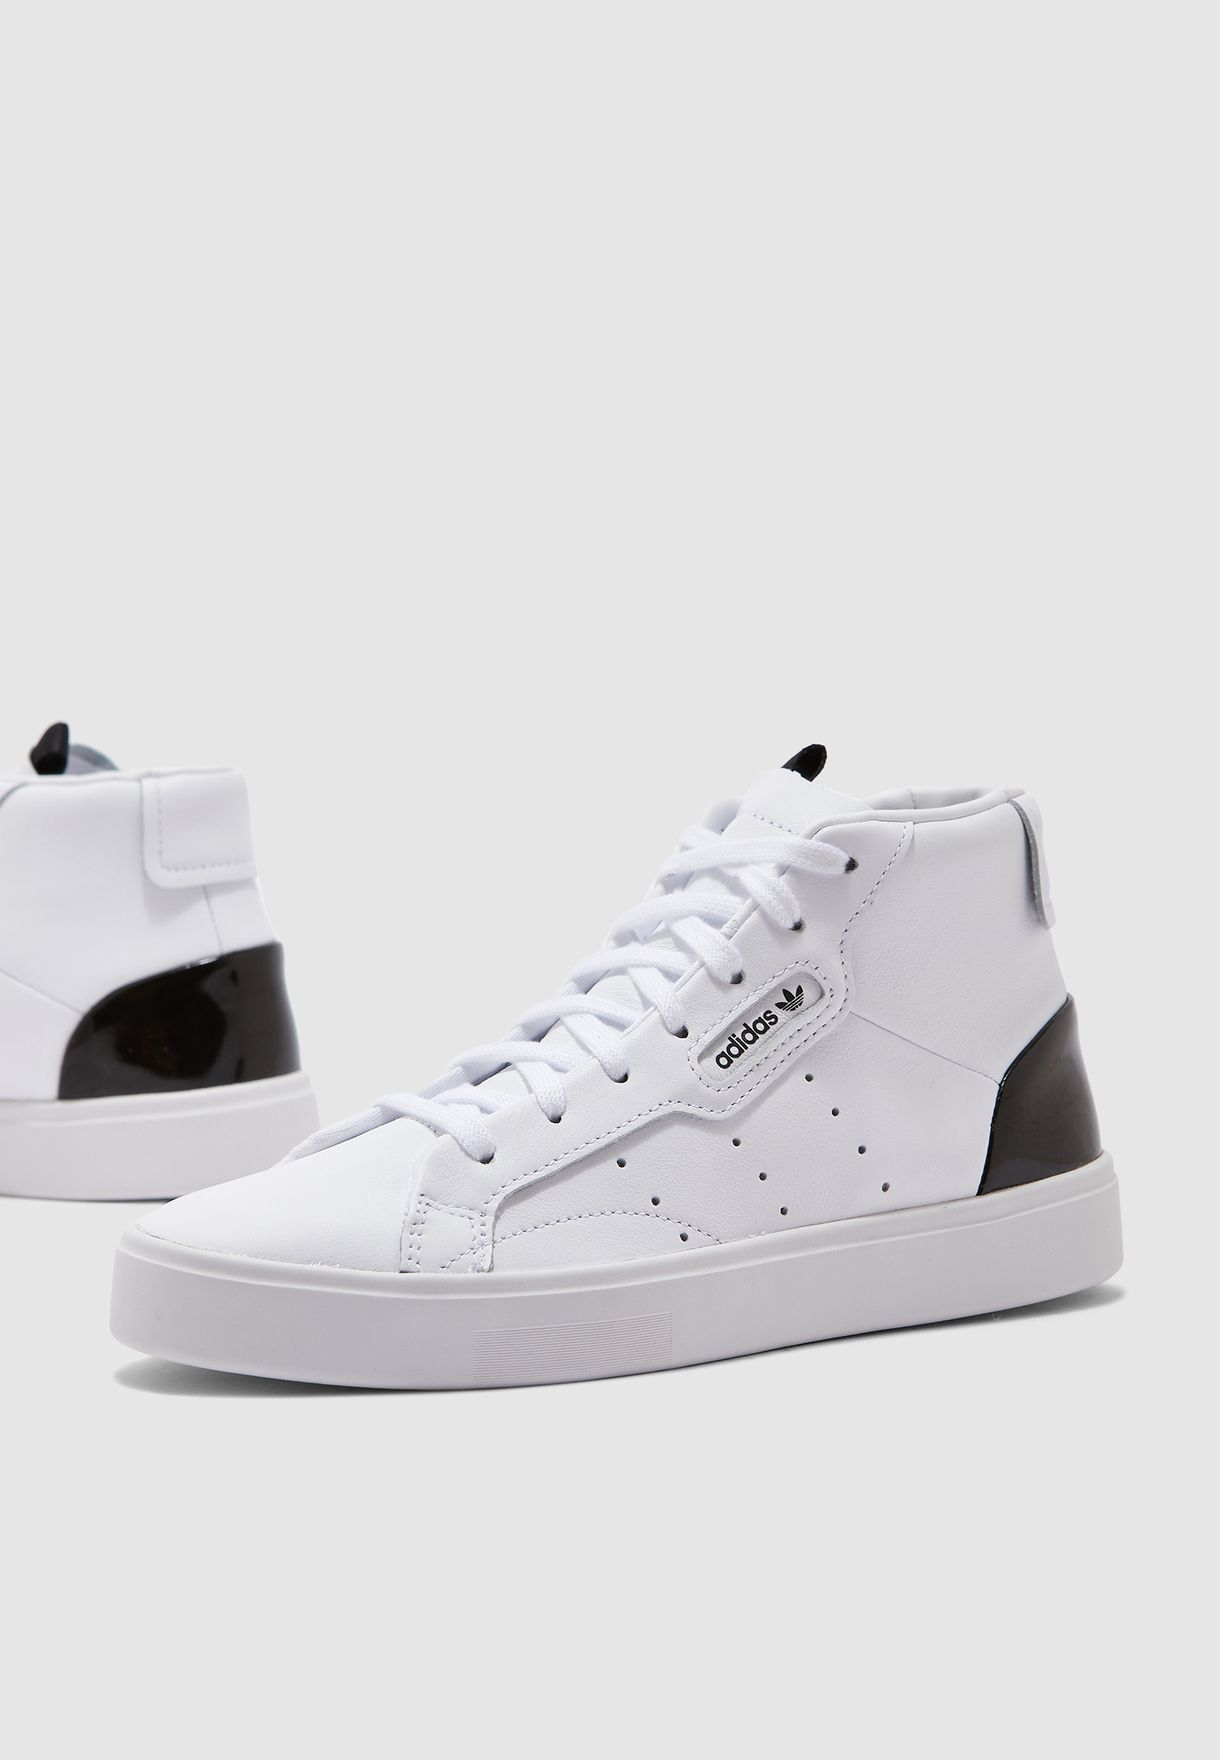 Details about Adidas Sleek Mid Women Shoes Ladies Casual High Top Sneaker White Black EF0701 show original title